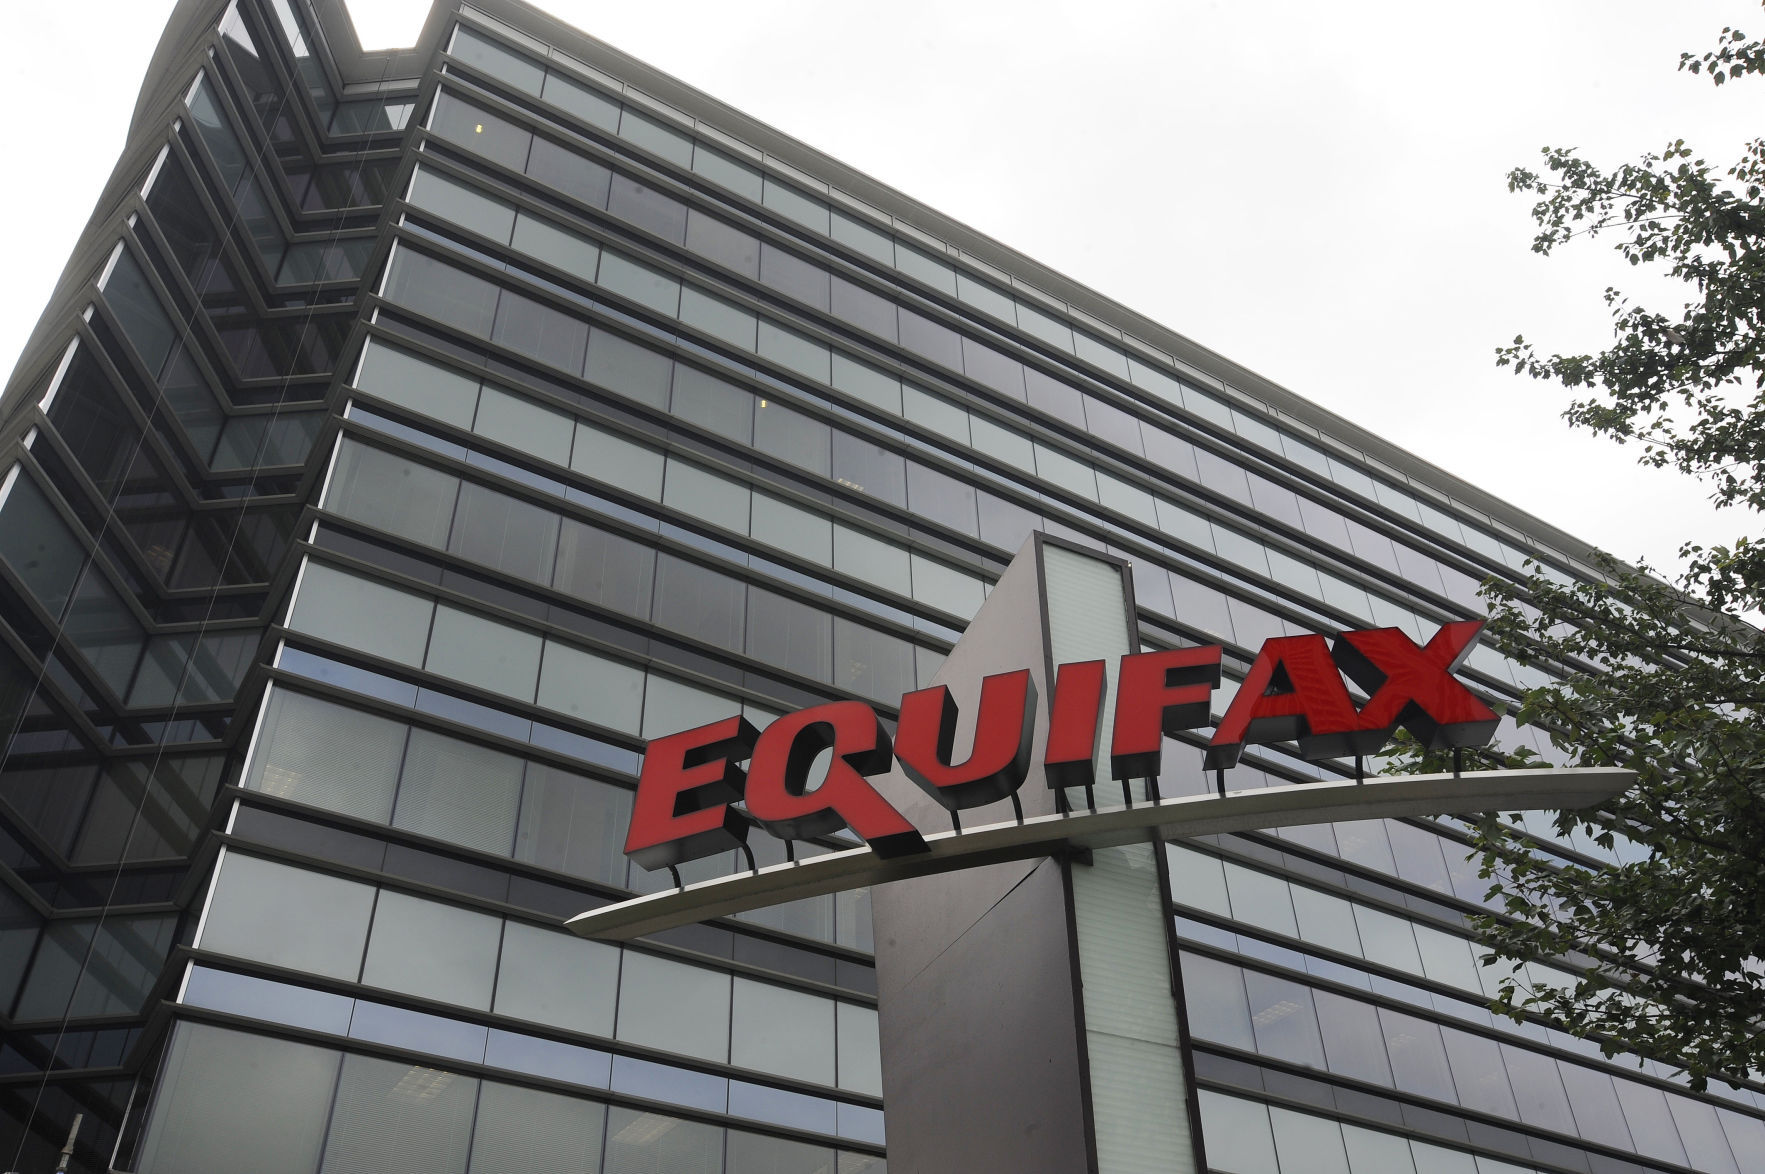 Equifax Security Showed Signs of Trouble Months Before Hack